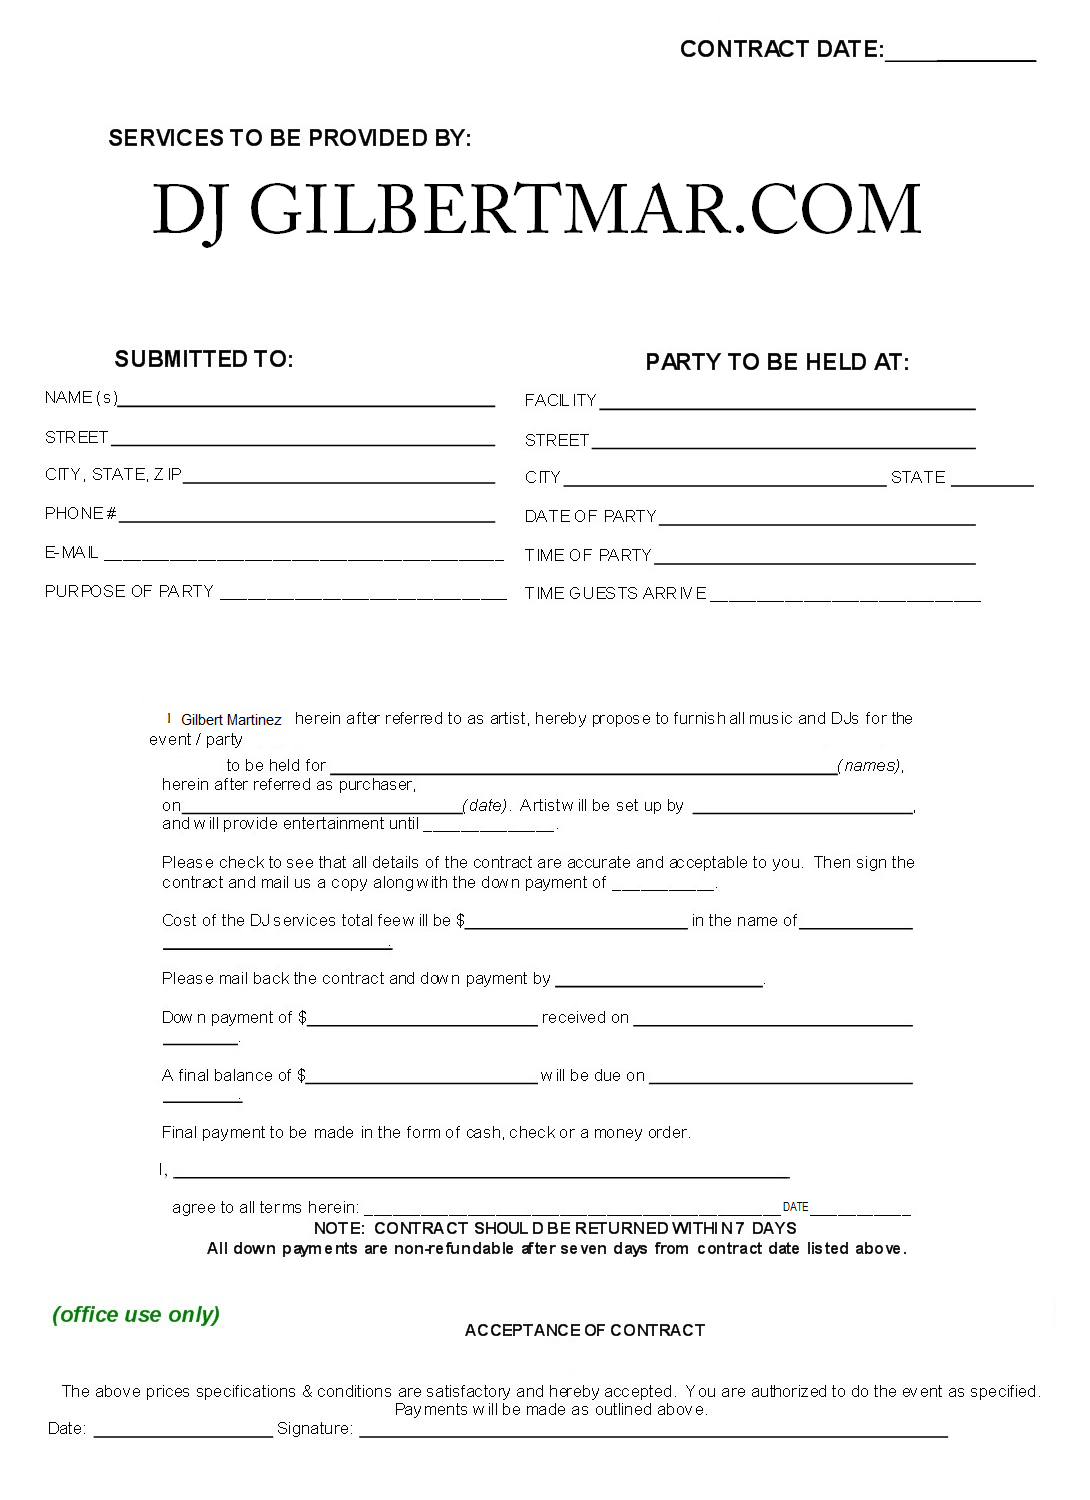 Dj Contract Template Non Compete Agreement Dj Contract Contract Template Dj Professional Templates